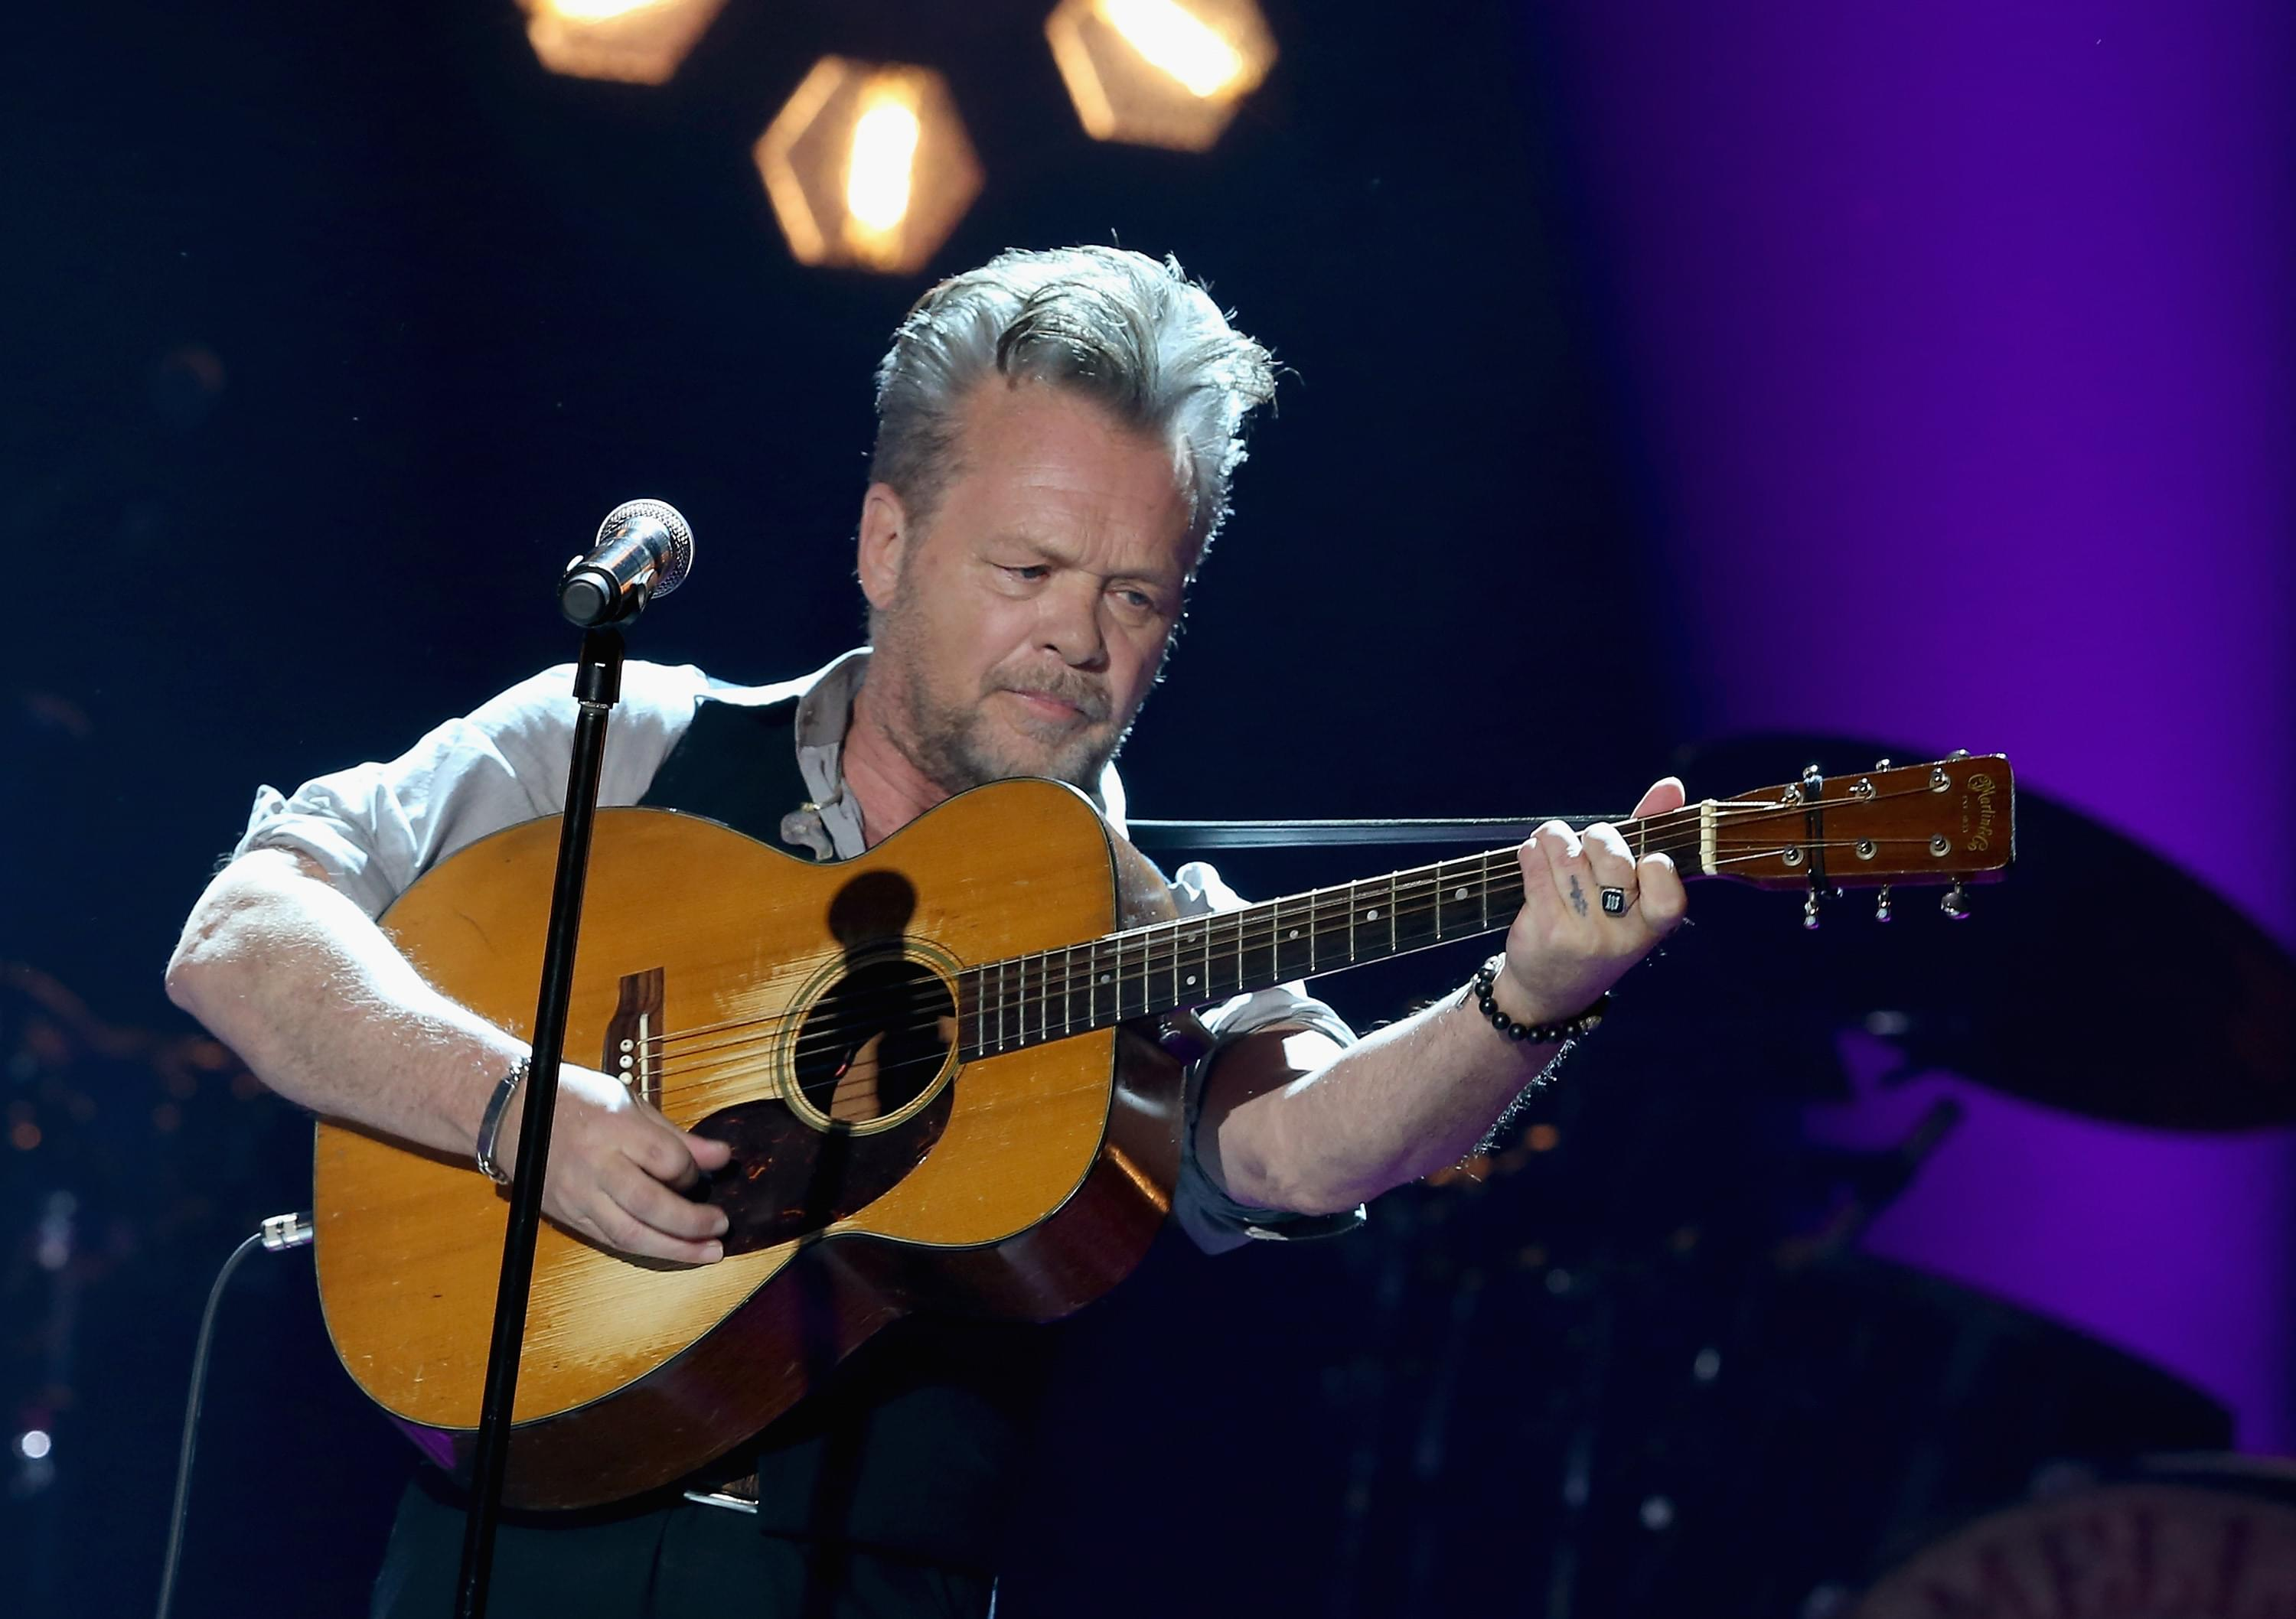 You Can Stream 'At Home With Farm Aid' With John Mellencamp & Friends This Saturday